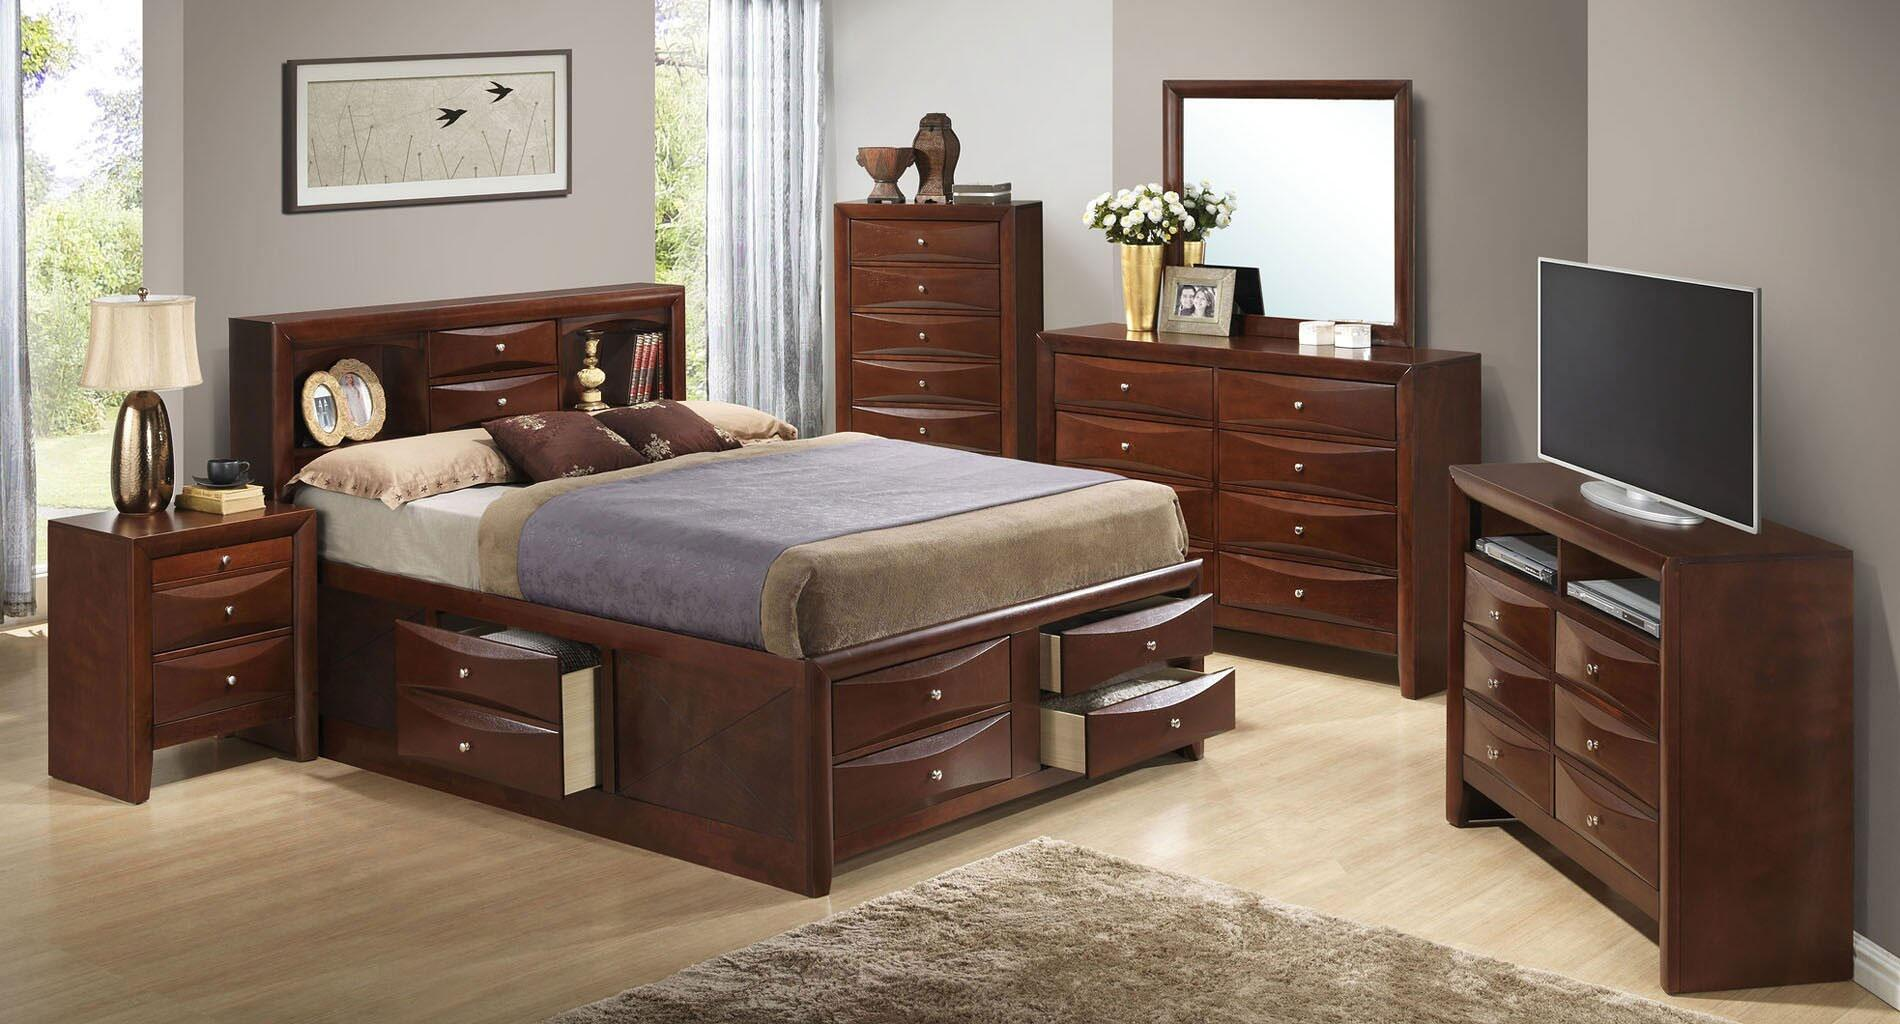 Glory Furniture G1550gqsb3set 6 Pc Bedroom Set With Queen Size